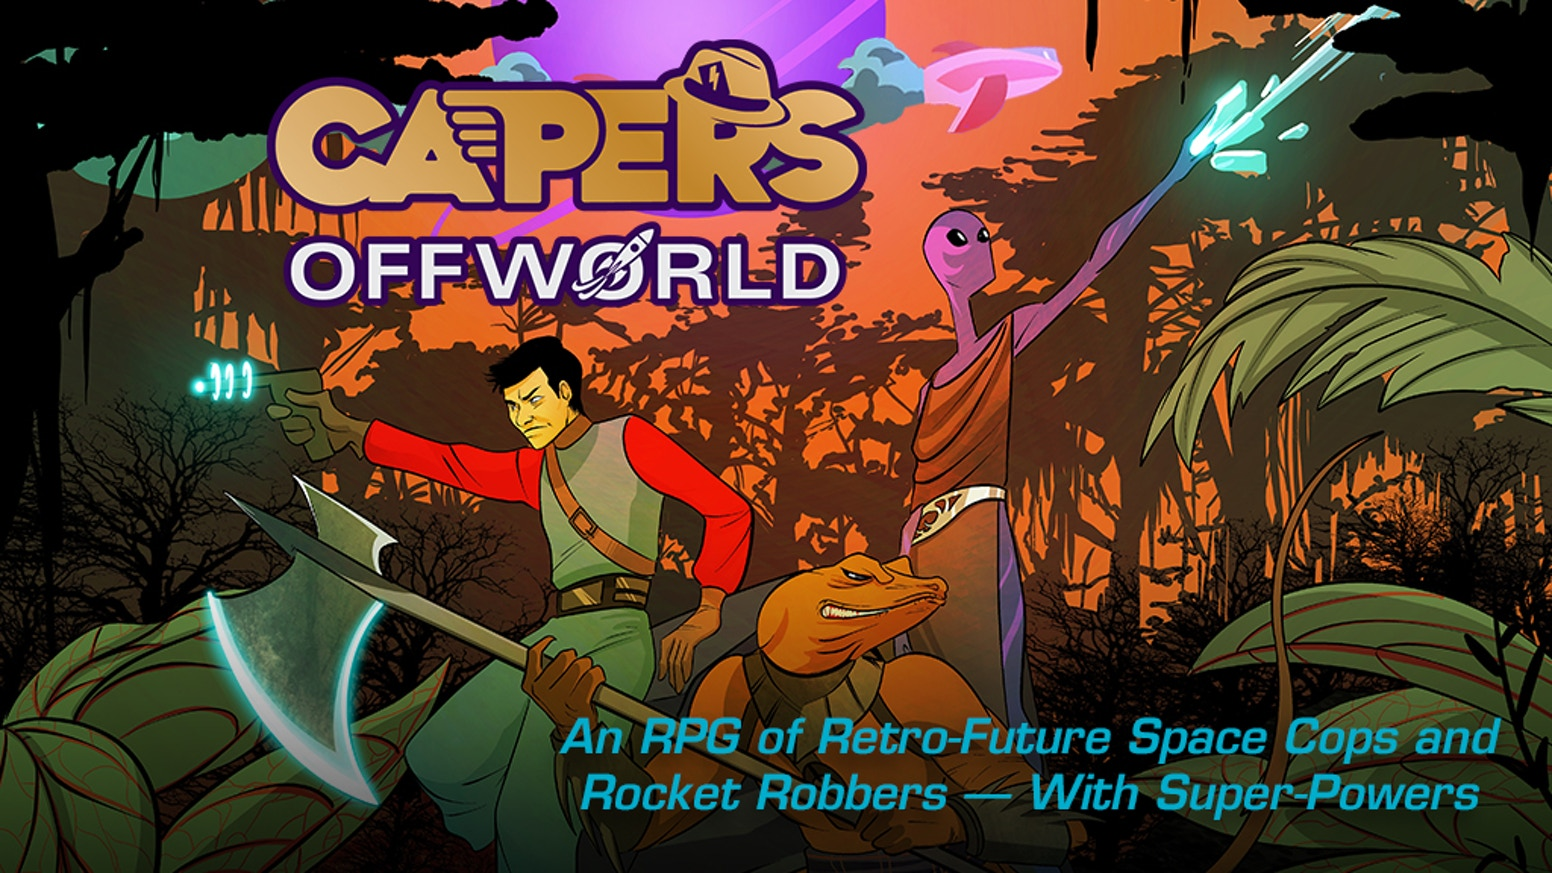 An RPG of Retro-Future Space Cops and Rocket Robbers...with Super-Powers!